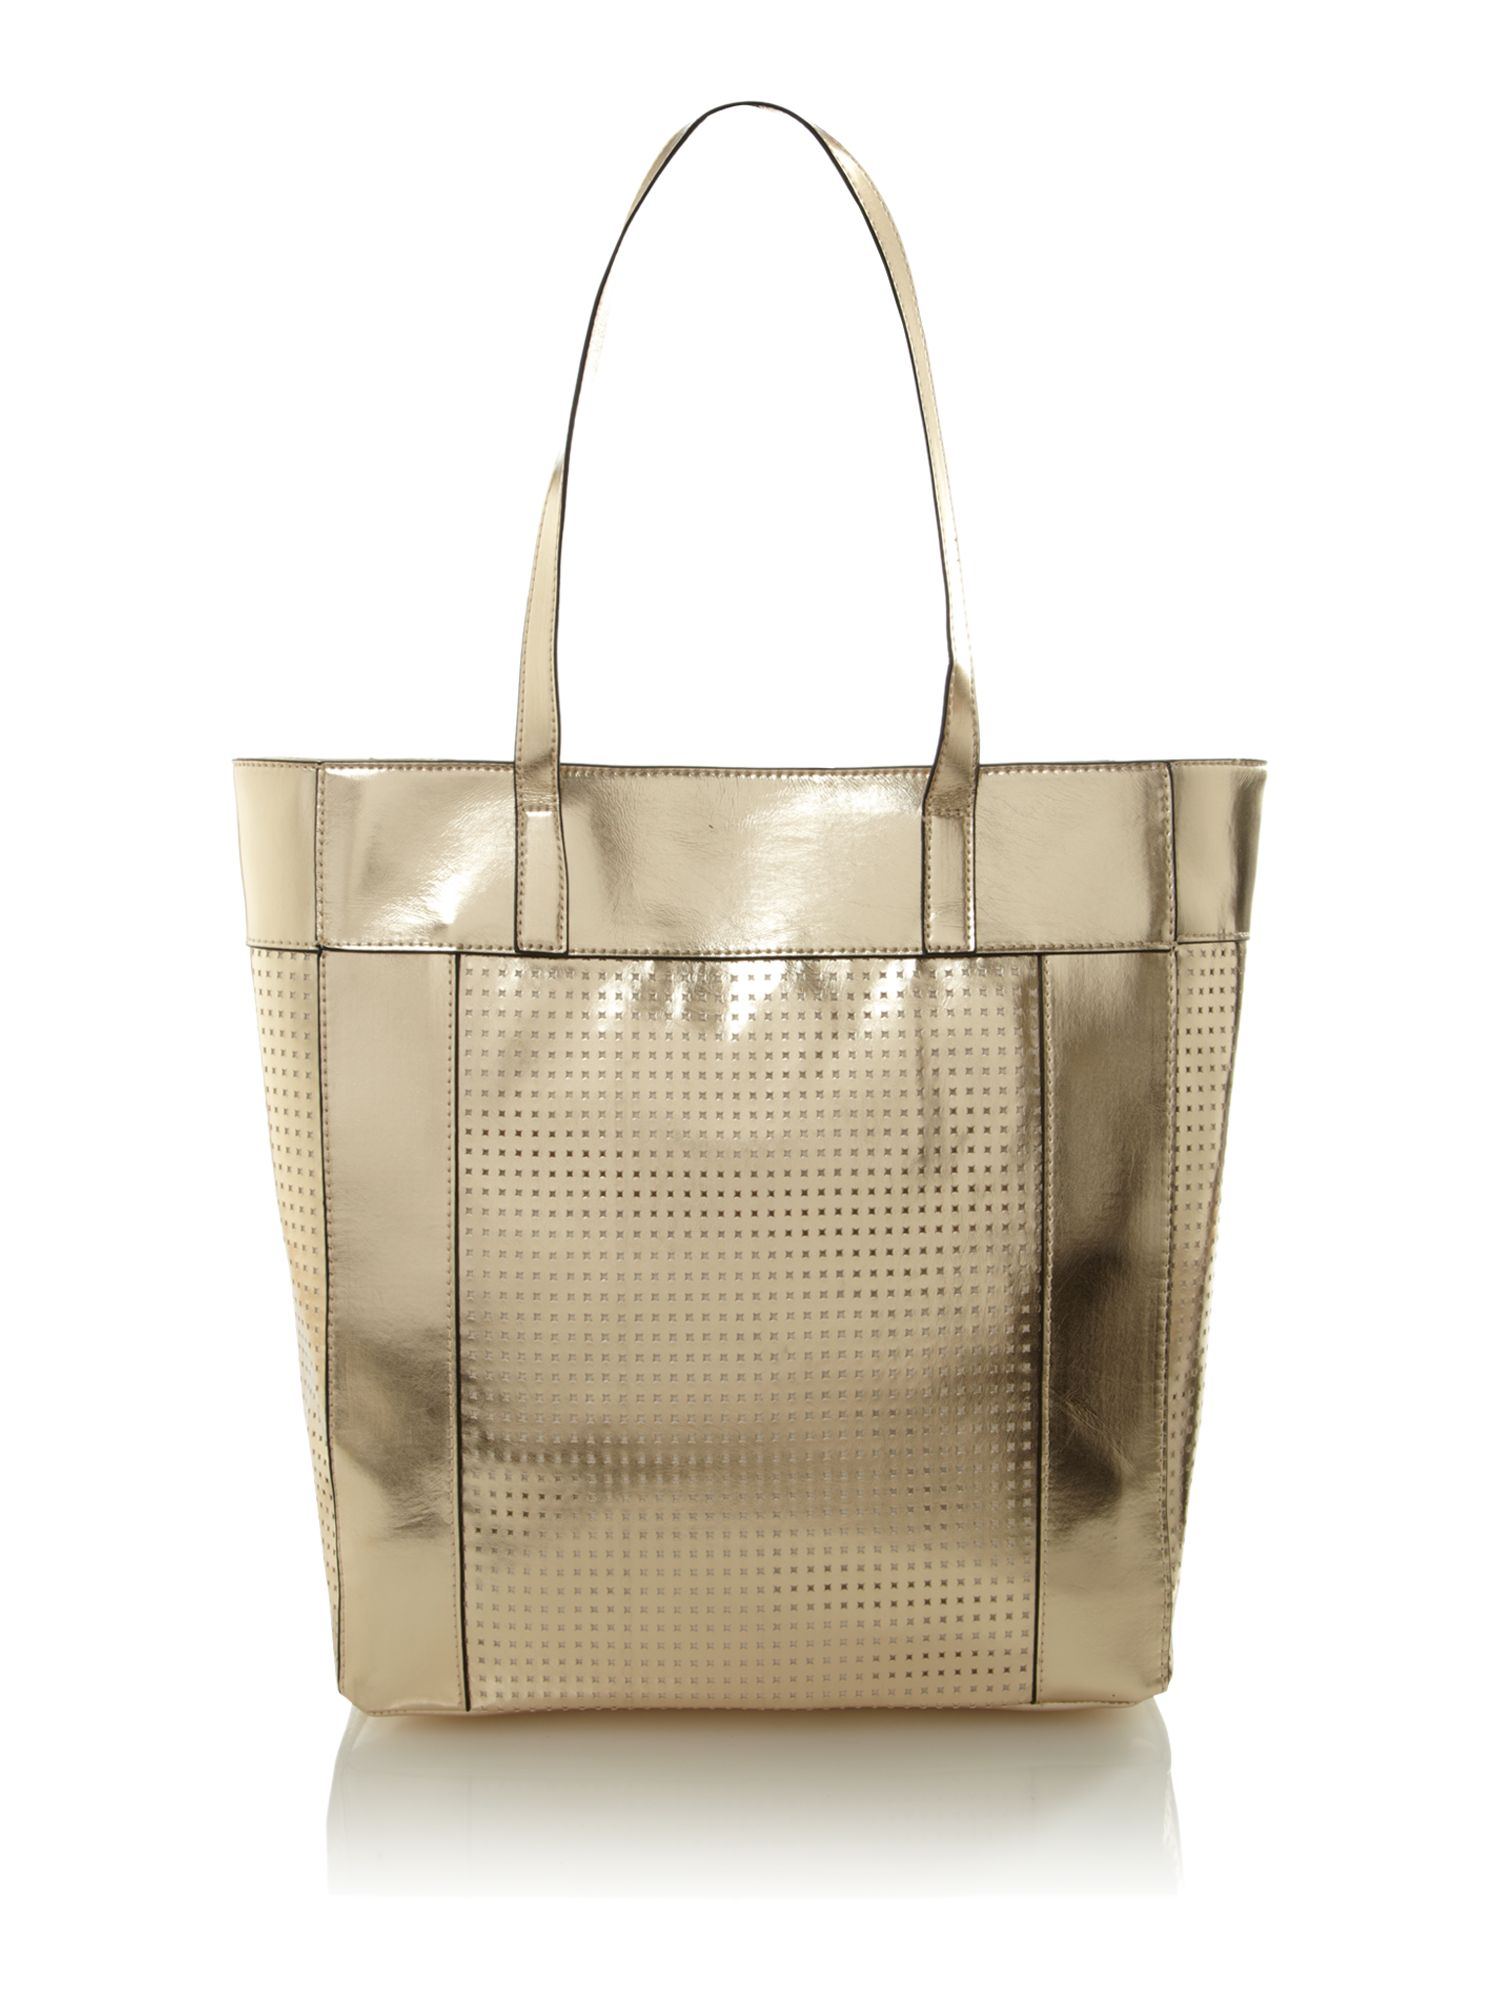 Kenneth Cole Reaction Murray Street Large Tote Bag in Metallic